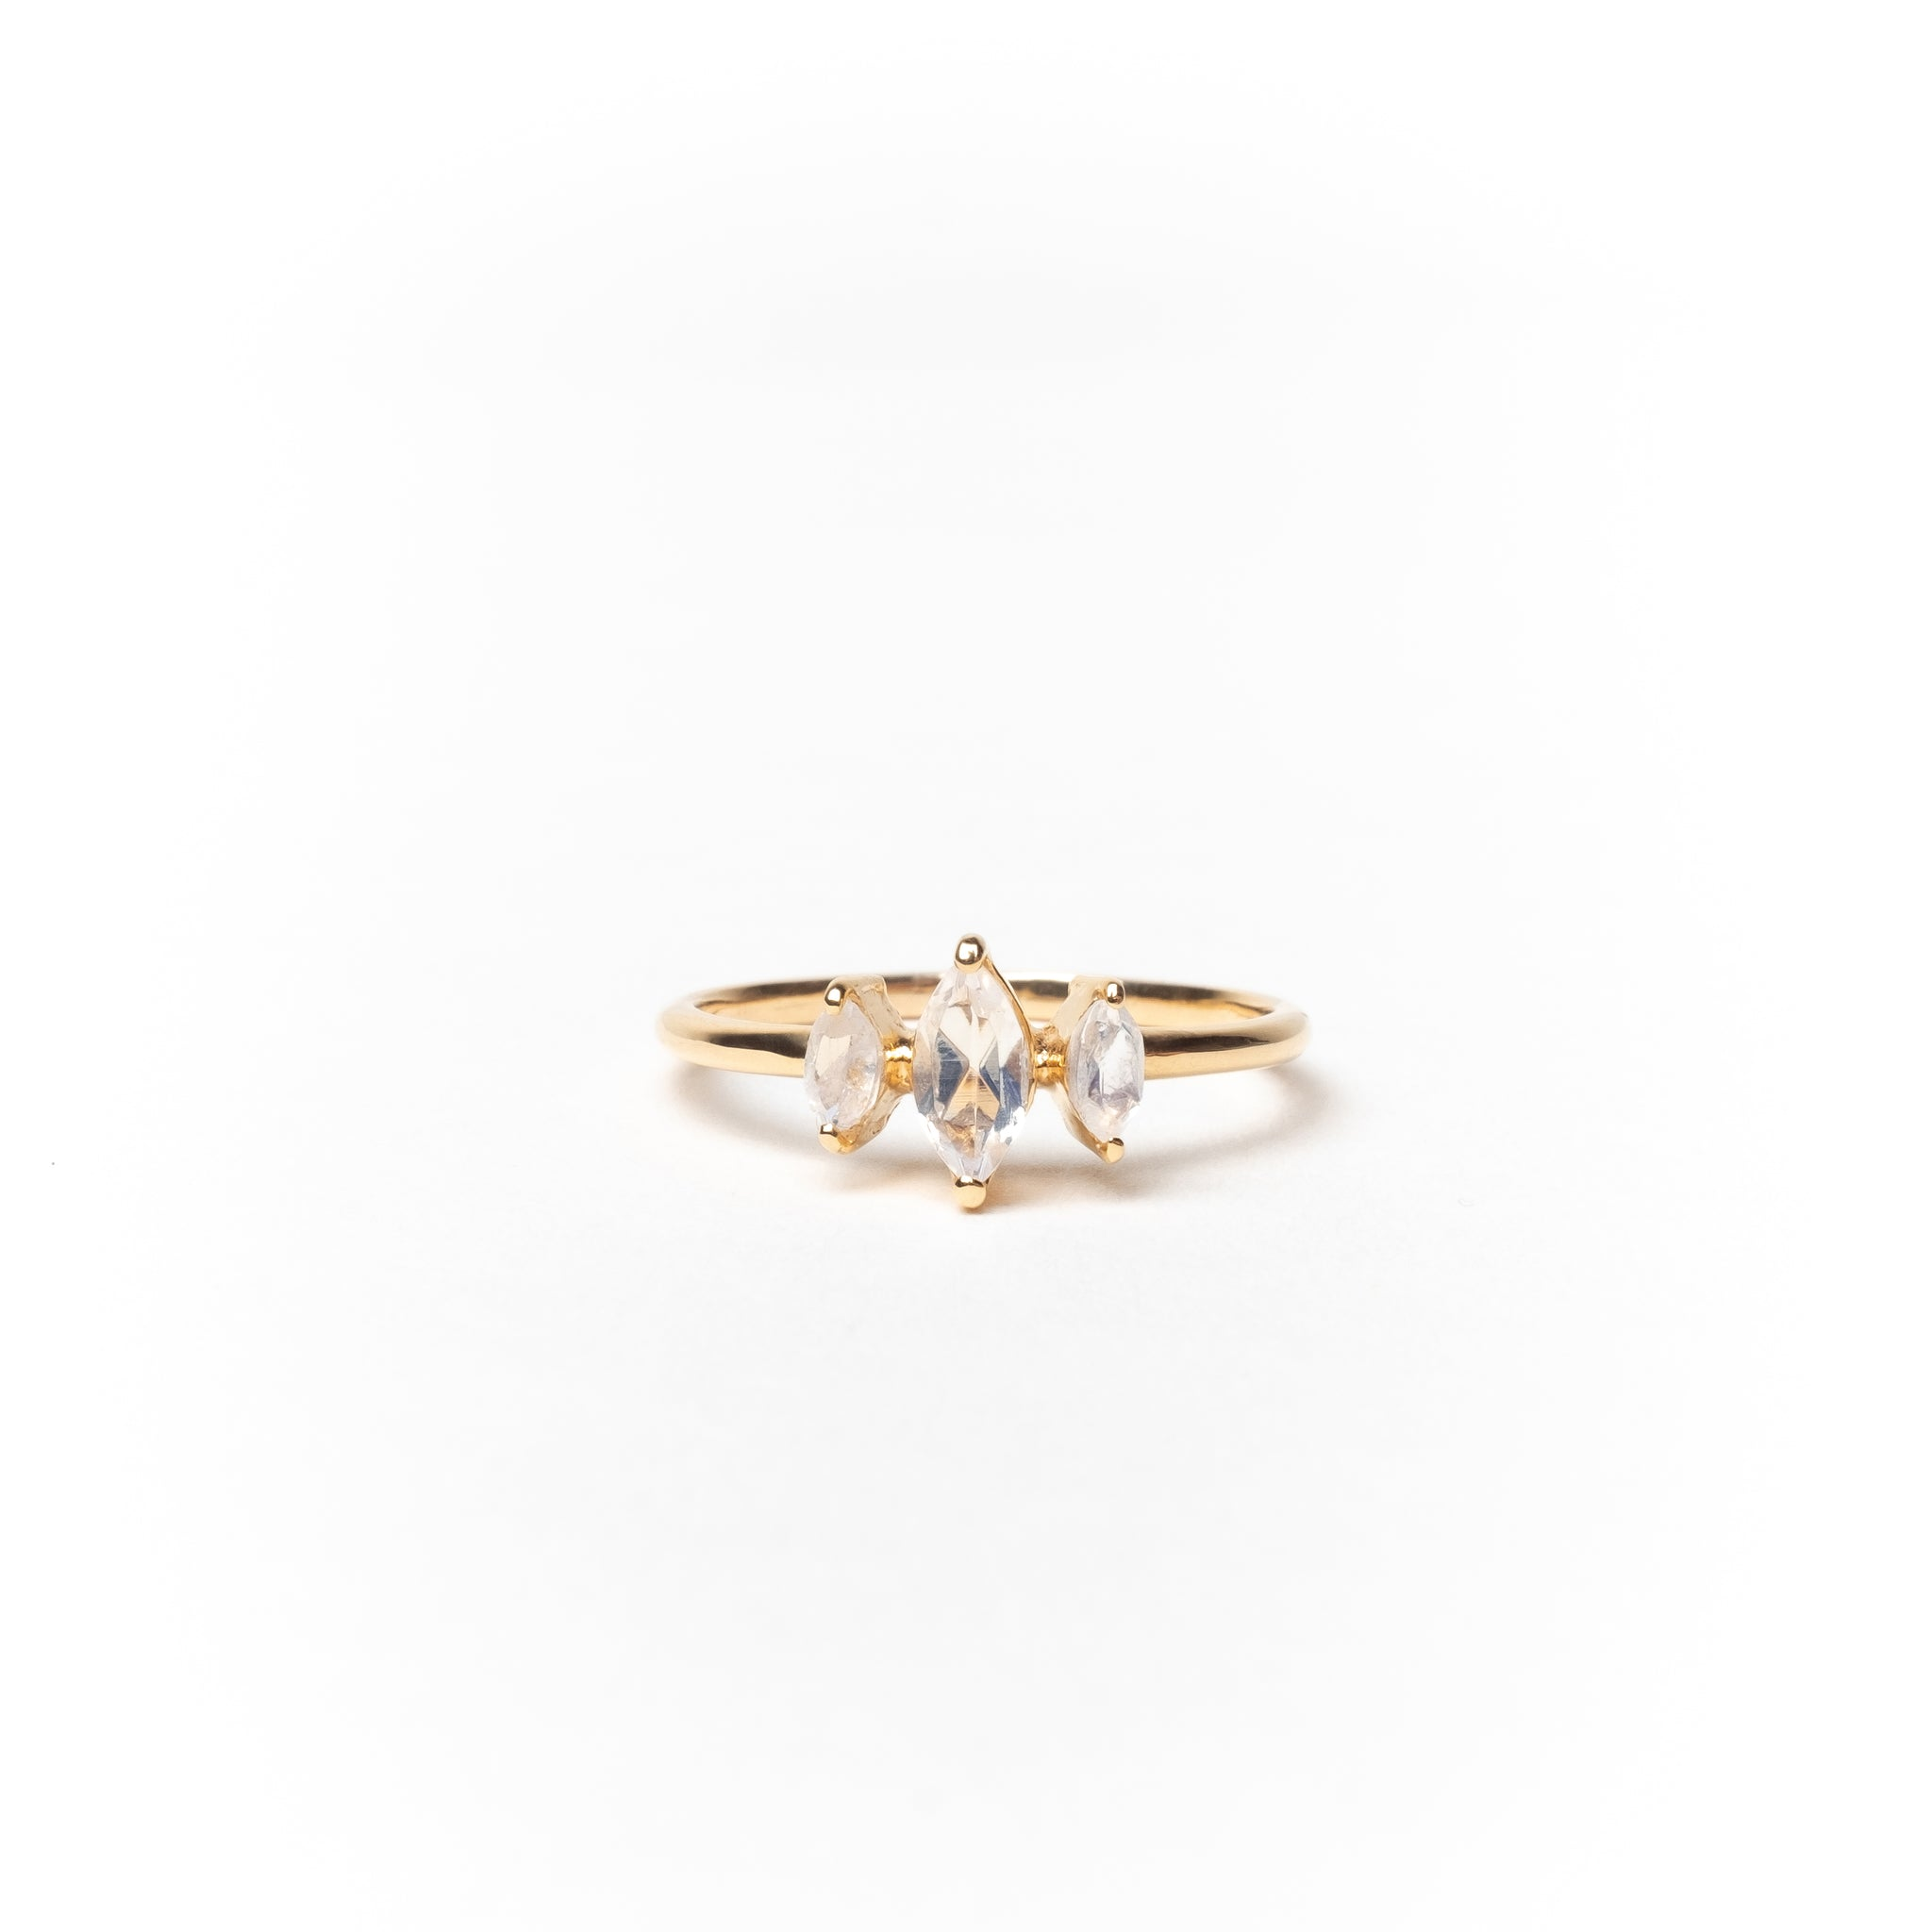 Three Marquise Stones Ring, Solid 14k Gold